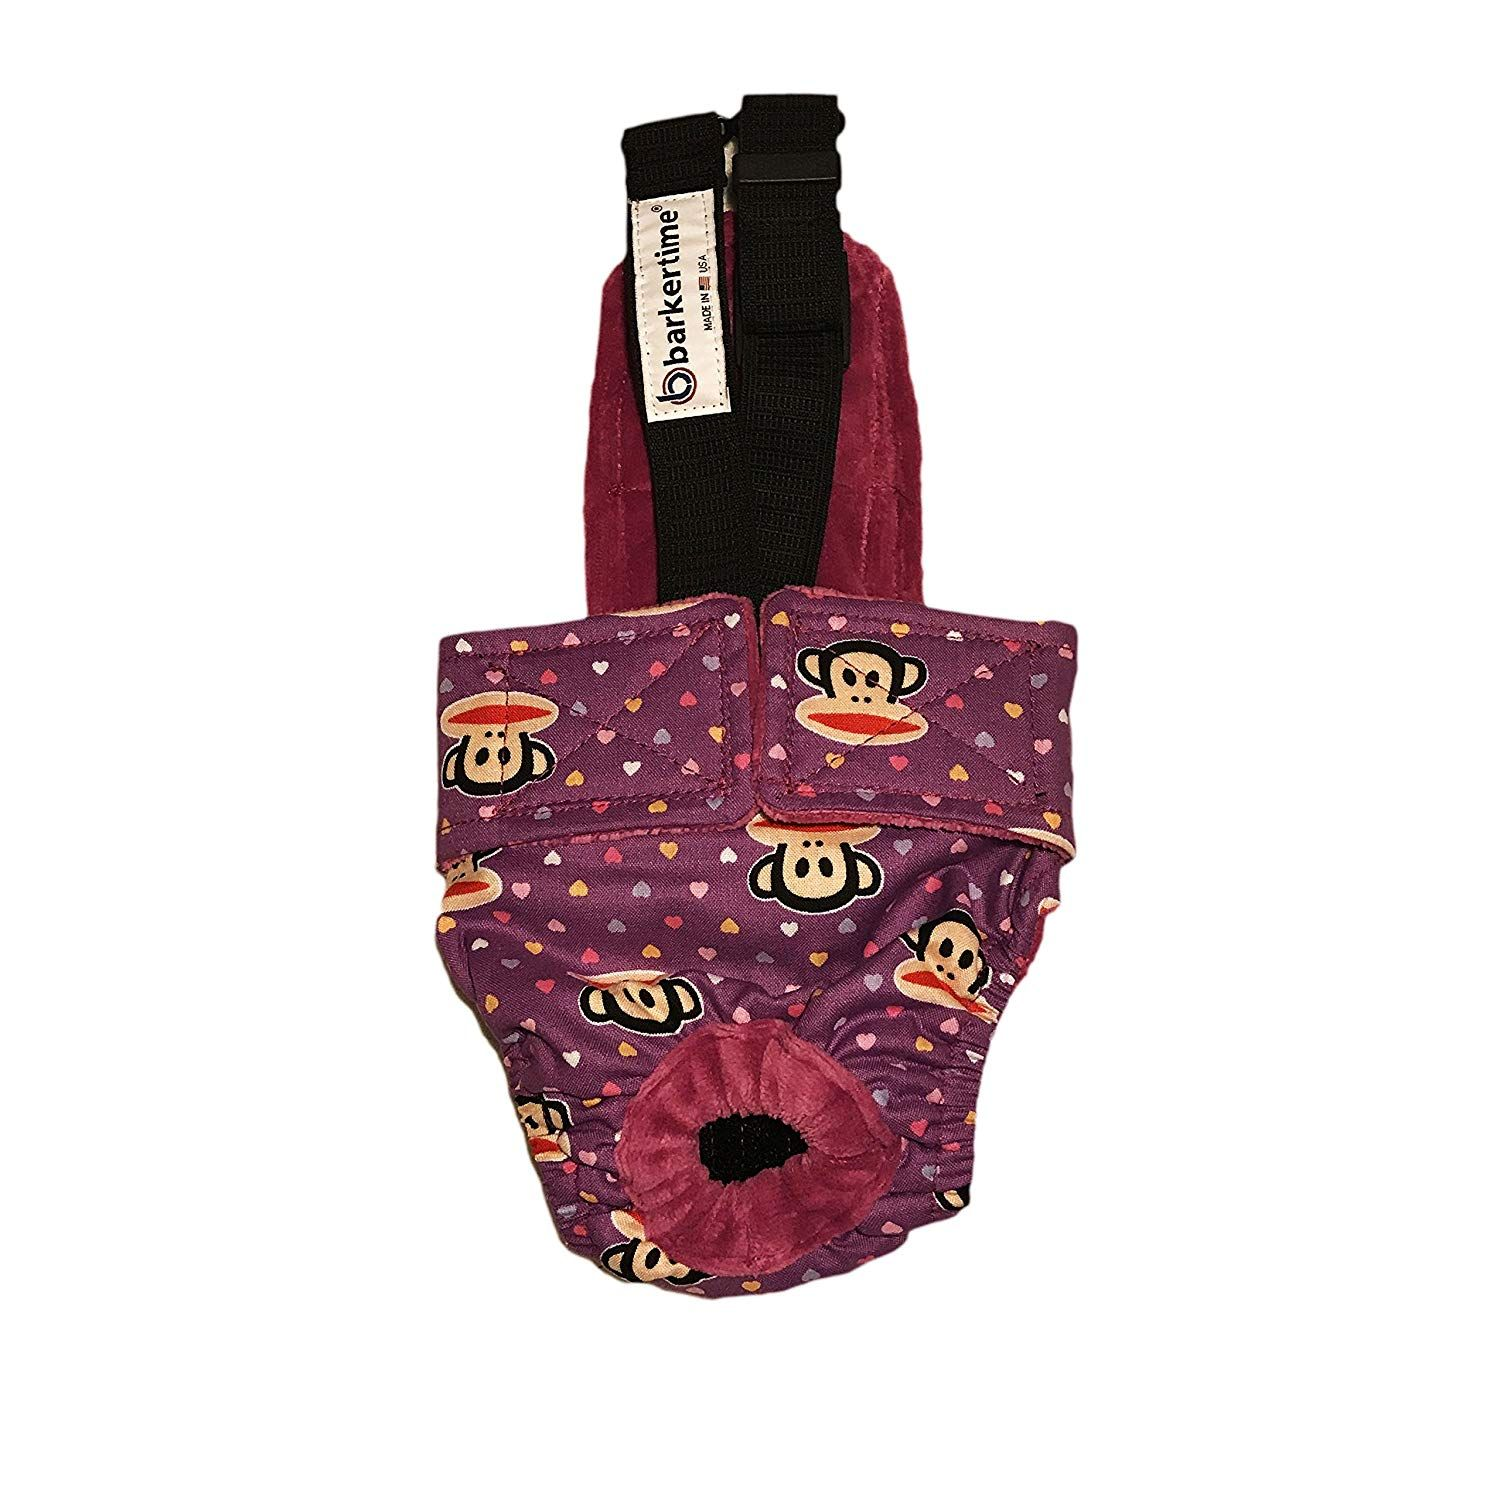 Dog diaper overall made in usa monkey hearts on purple